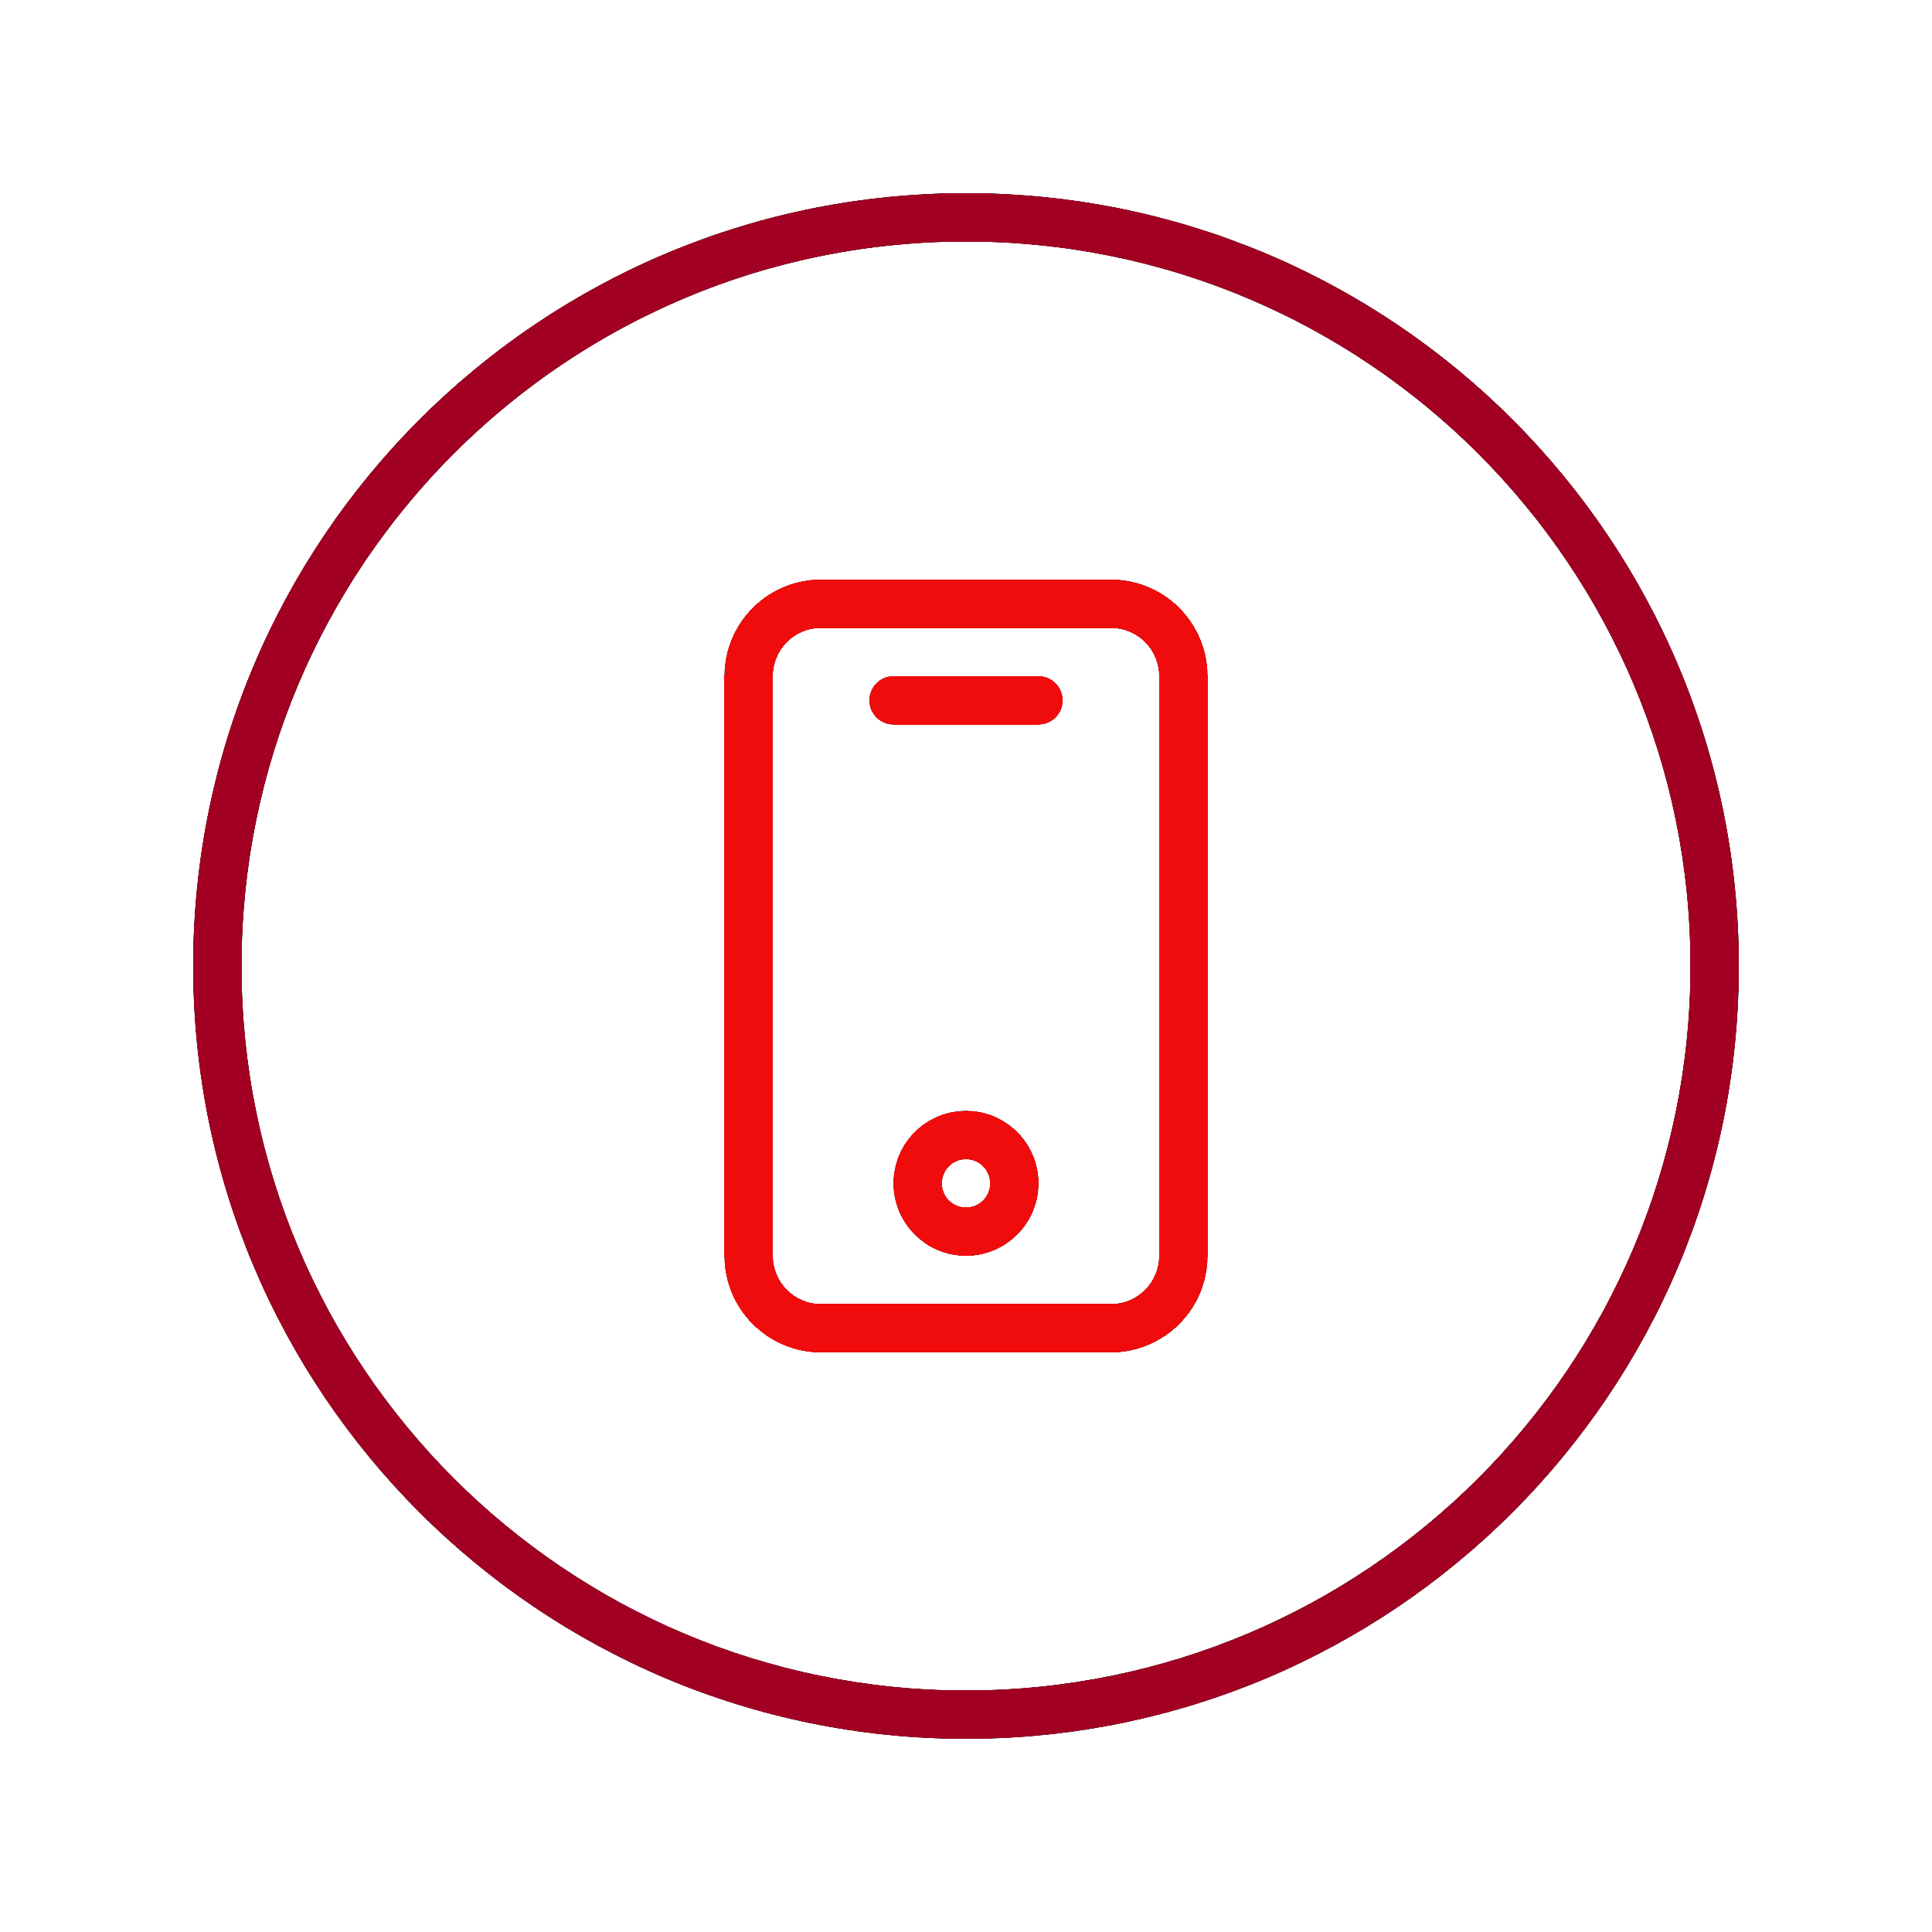 phone_icon_redd.png